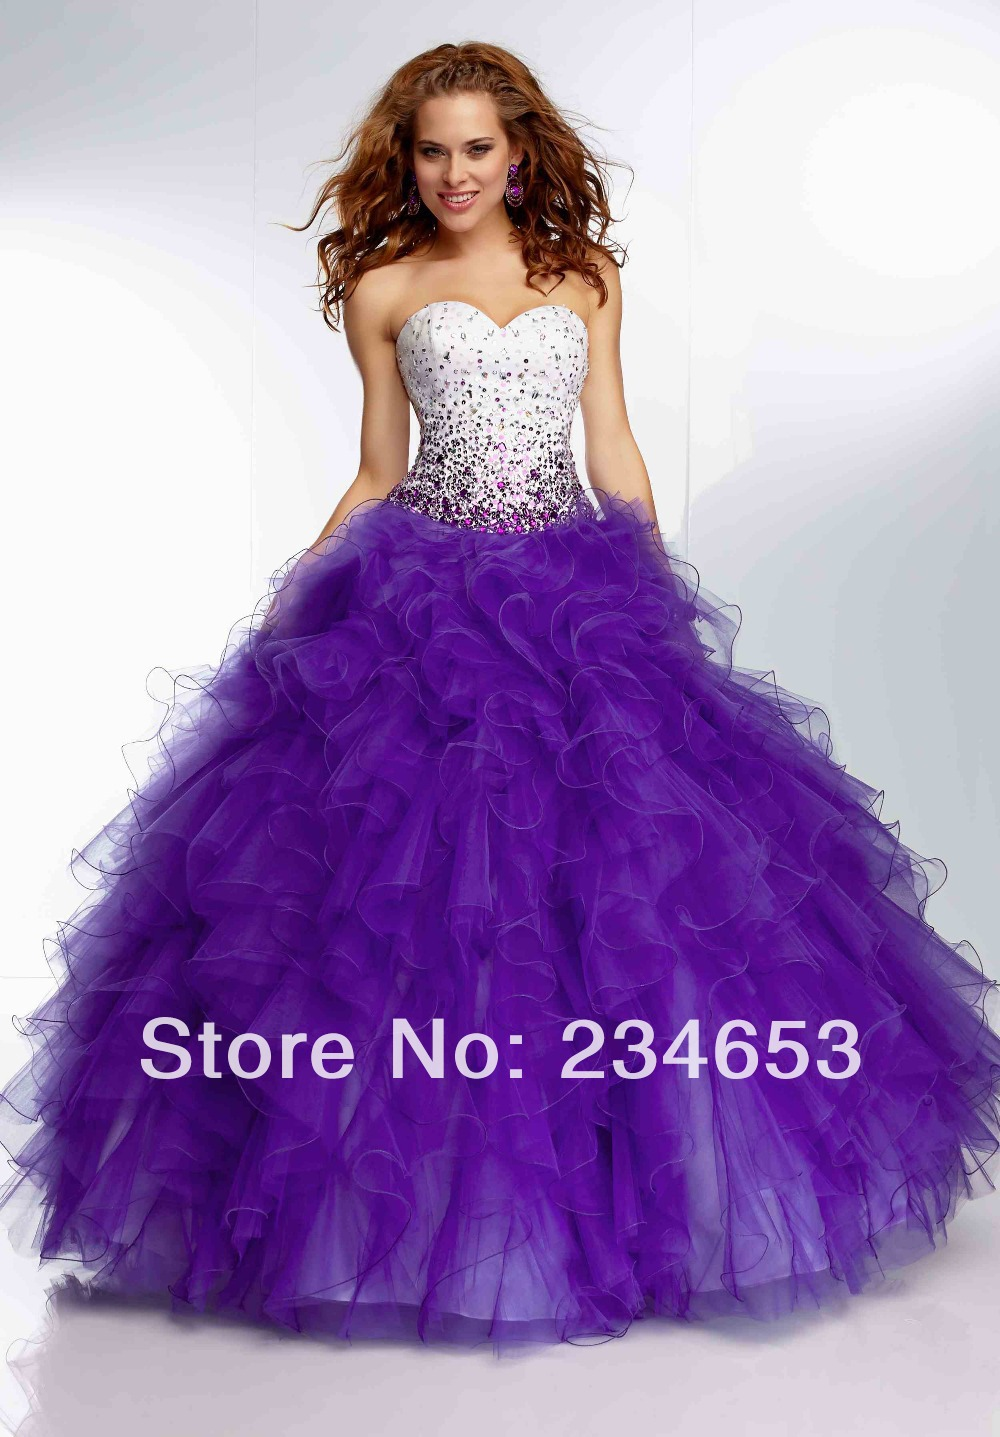 2014 New Strapess Beading Tulle Ball Gown Prom Dresses with Lace Up Back Formal Quinceanera Gown-in Prom Dresses from Apparel & Accessories on Aliexpress.com